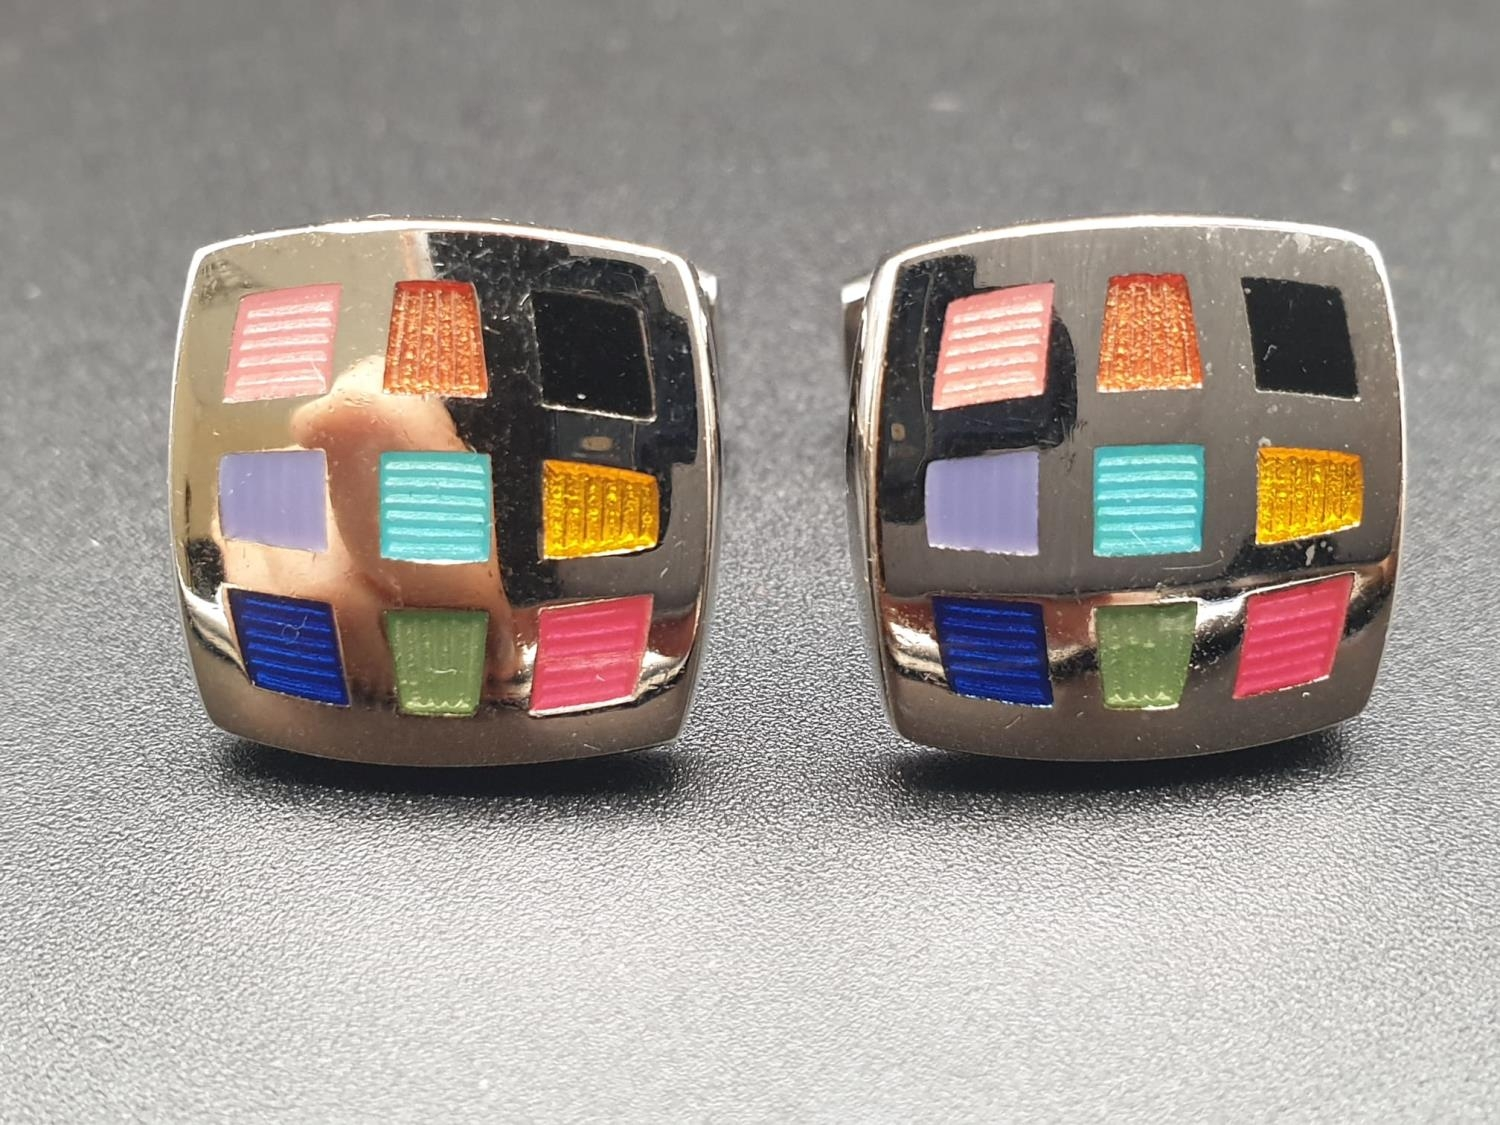 Pair of Duchamp Harlequin Cufflinks and a Gold Plated Stratton Tie clip - 6cm - Image 2 of 7